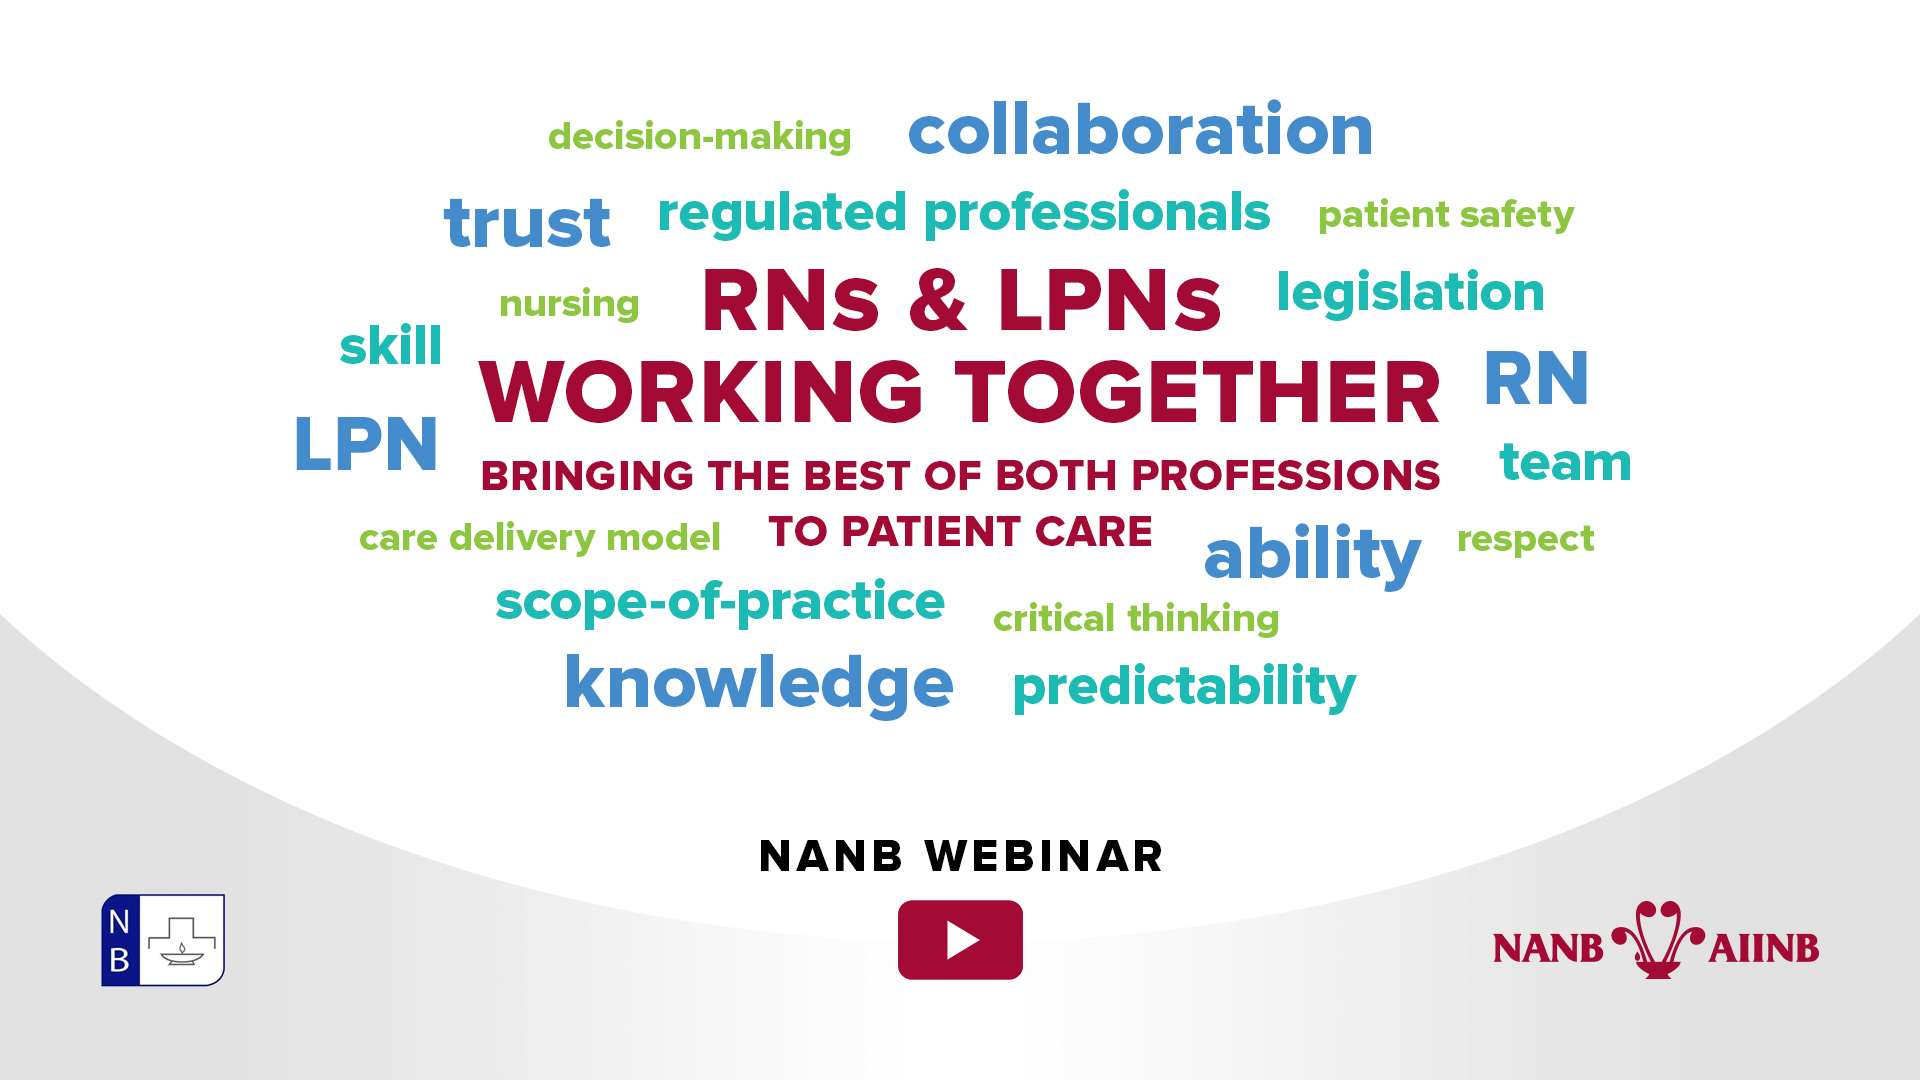 RNs &LPNs Working Together